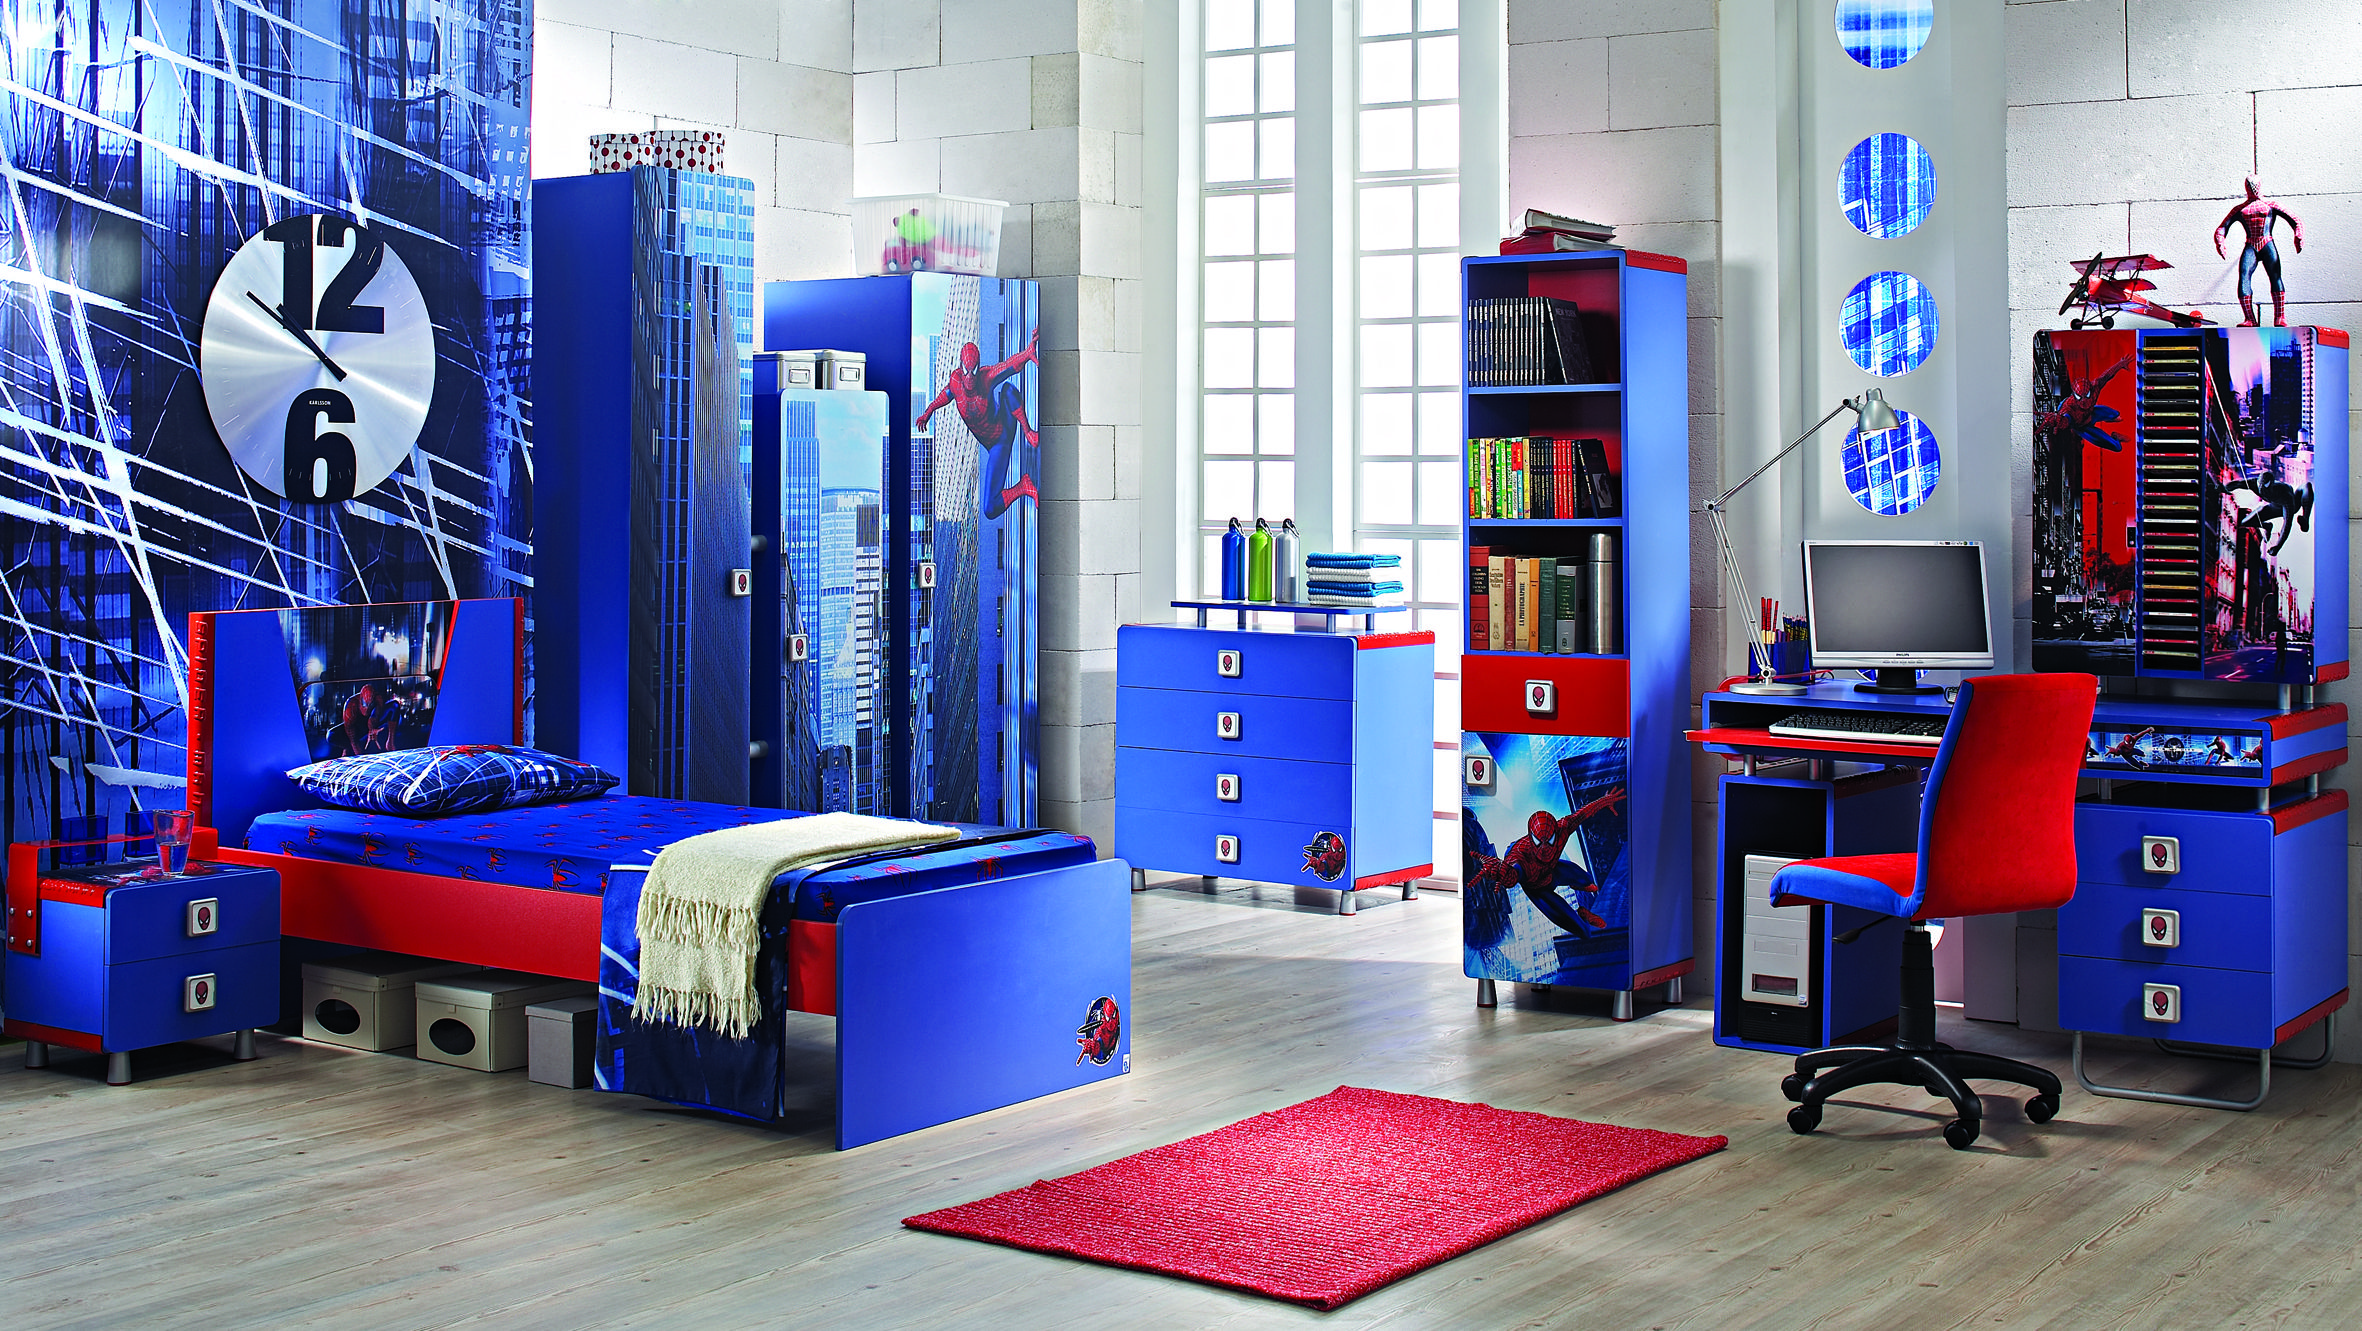 Amazing Red Blue Spiderman Boys Theme Bedroom With Vibrant Red Blue Bed And  Foxy Blue Study Desk Book Shelves And Cabinet All With Ravishing Spiderman  ...